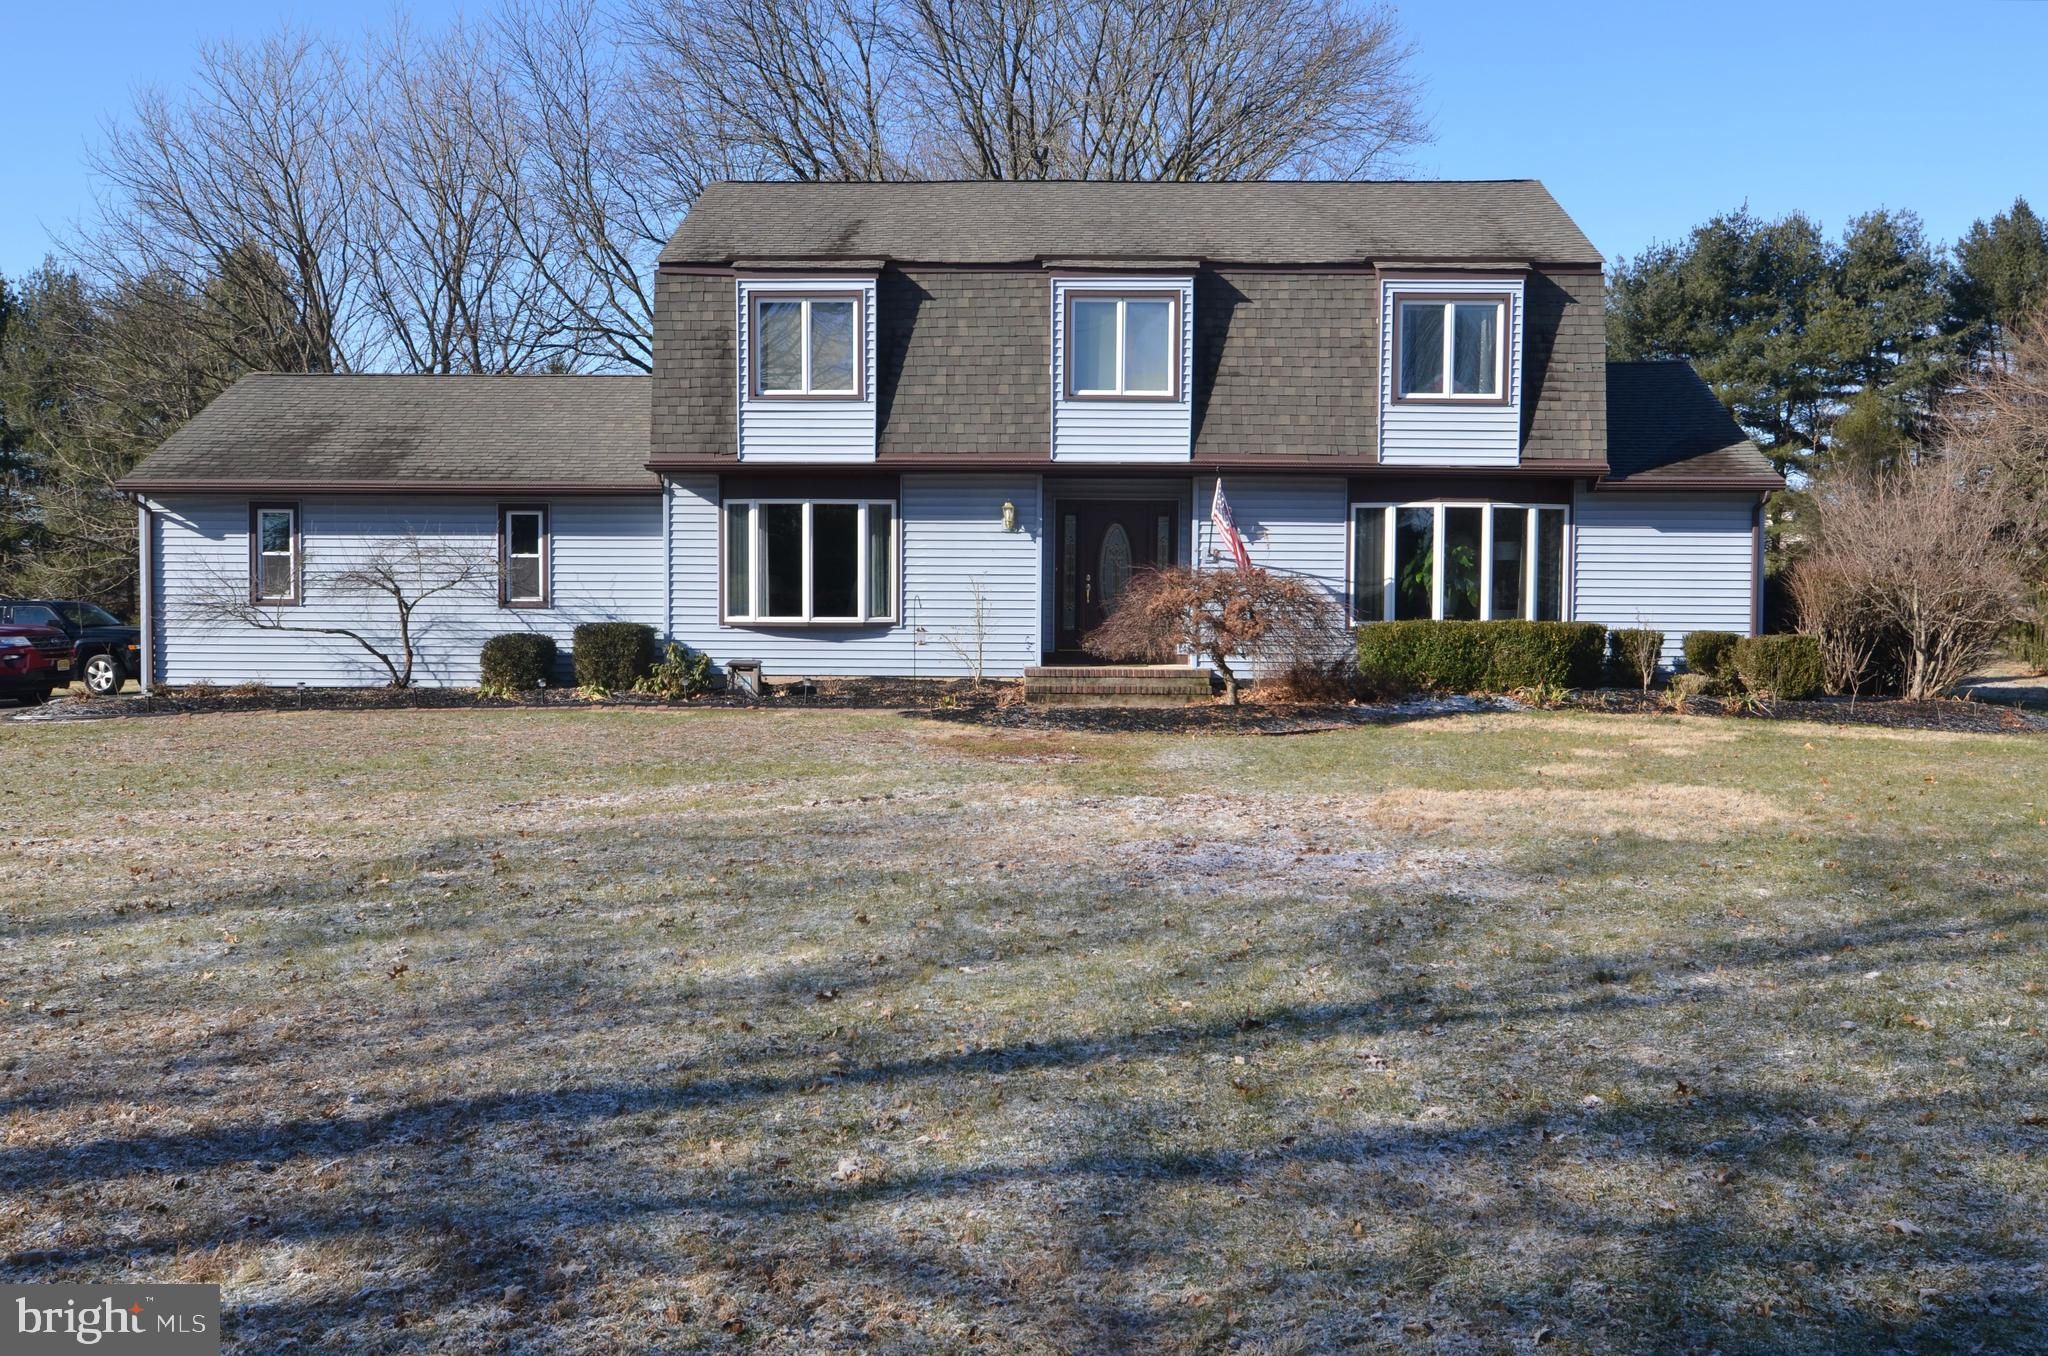 137 MANNERS ROAD, RINGOES, NJ 08551